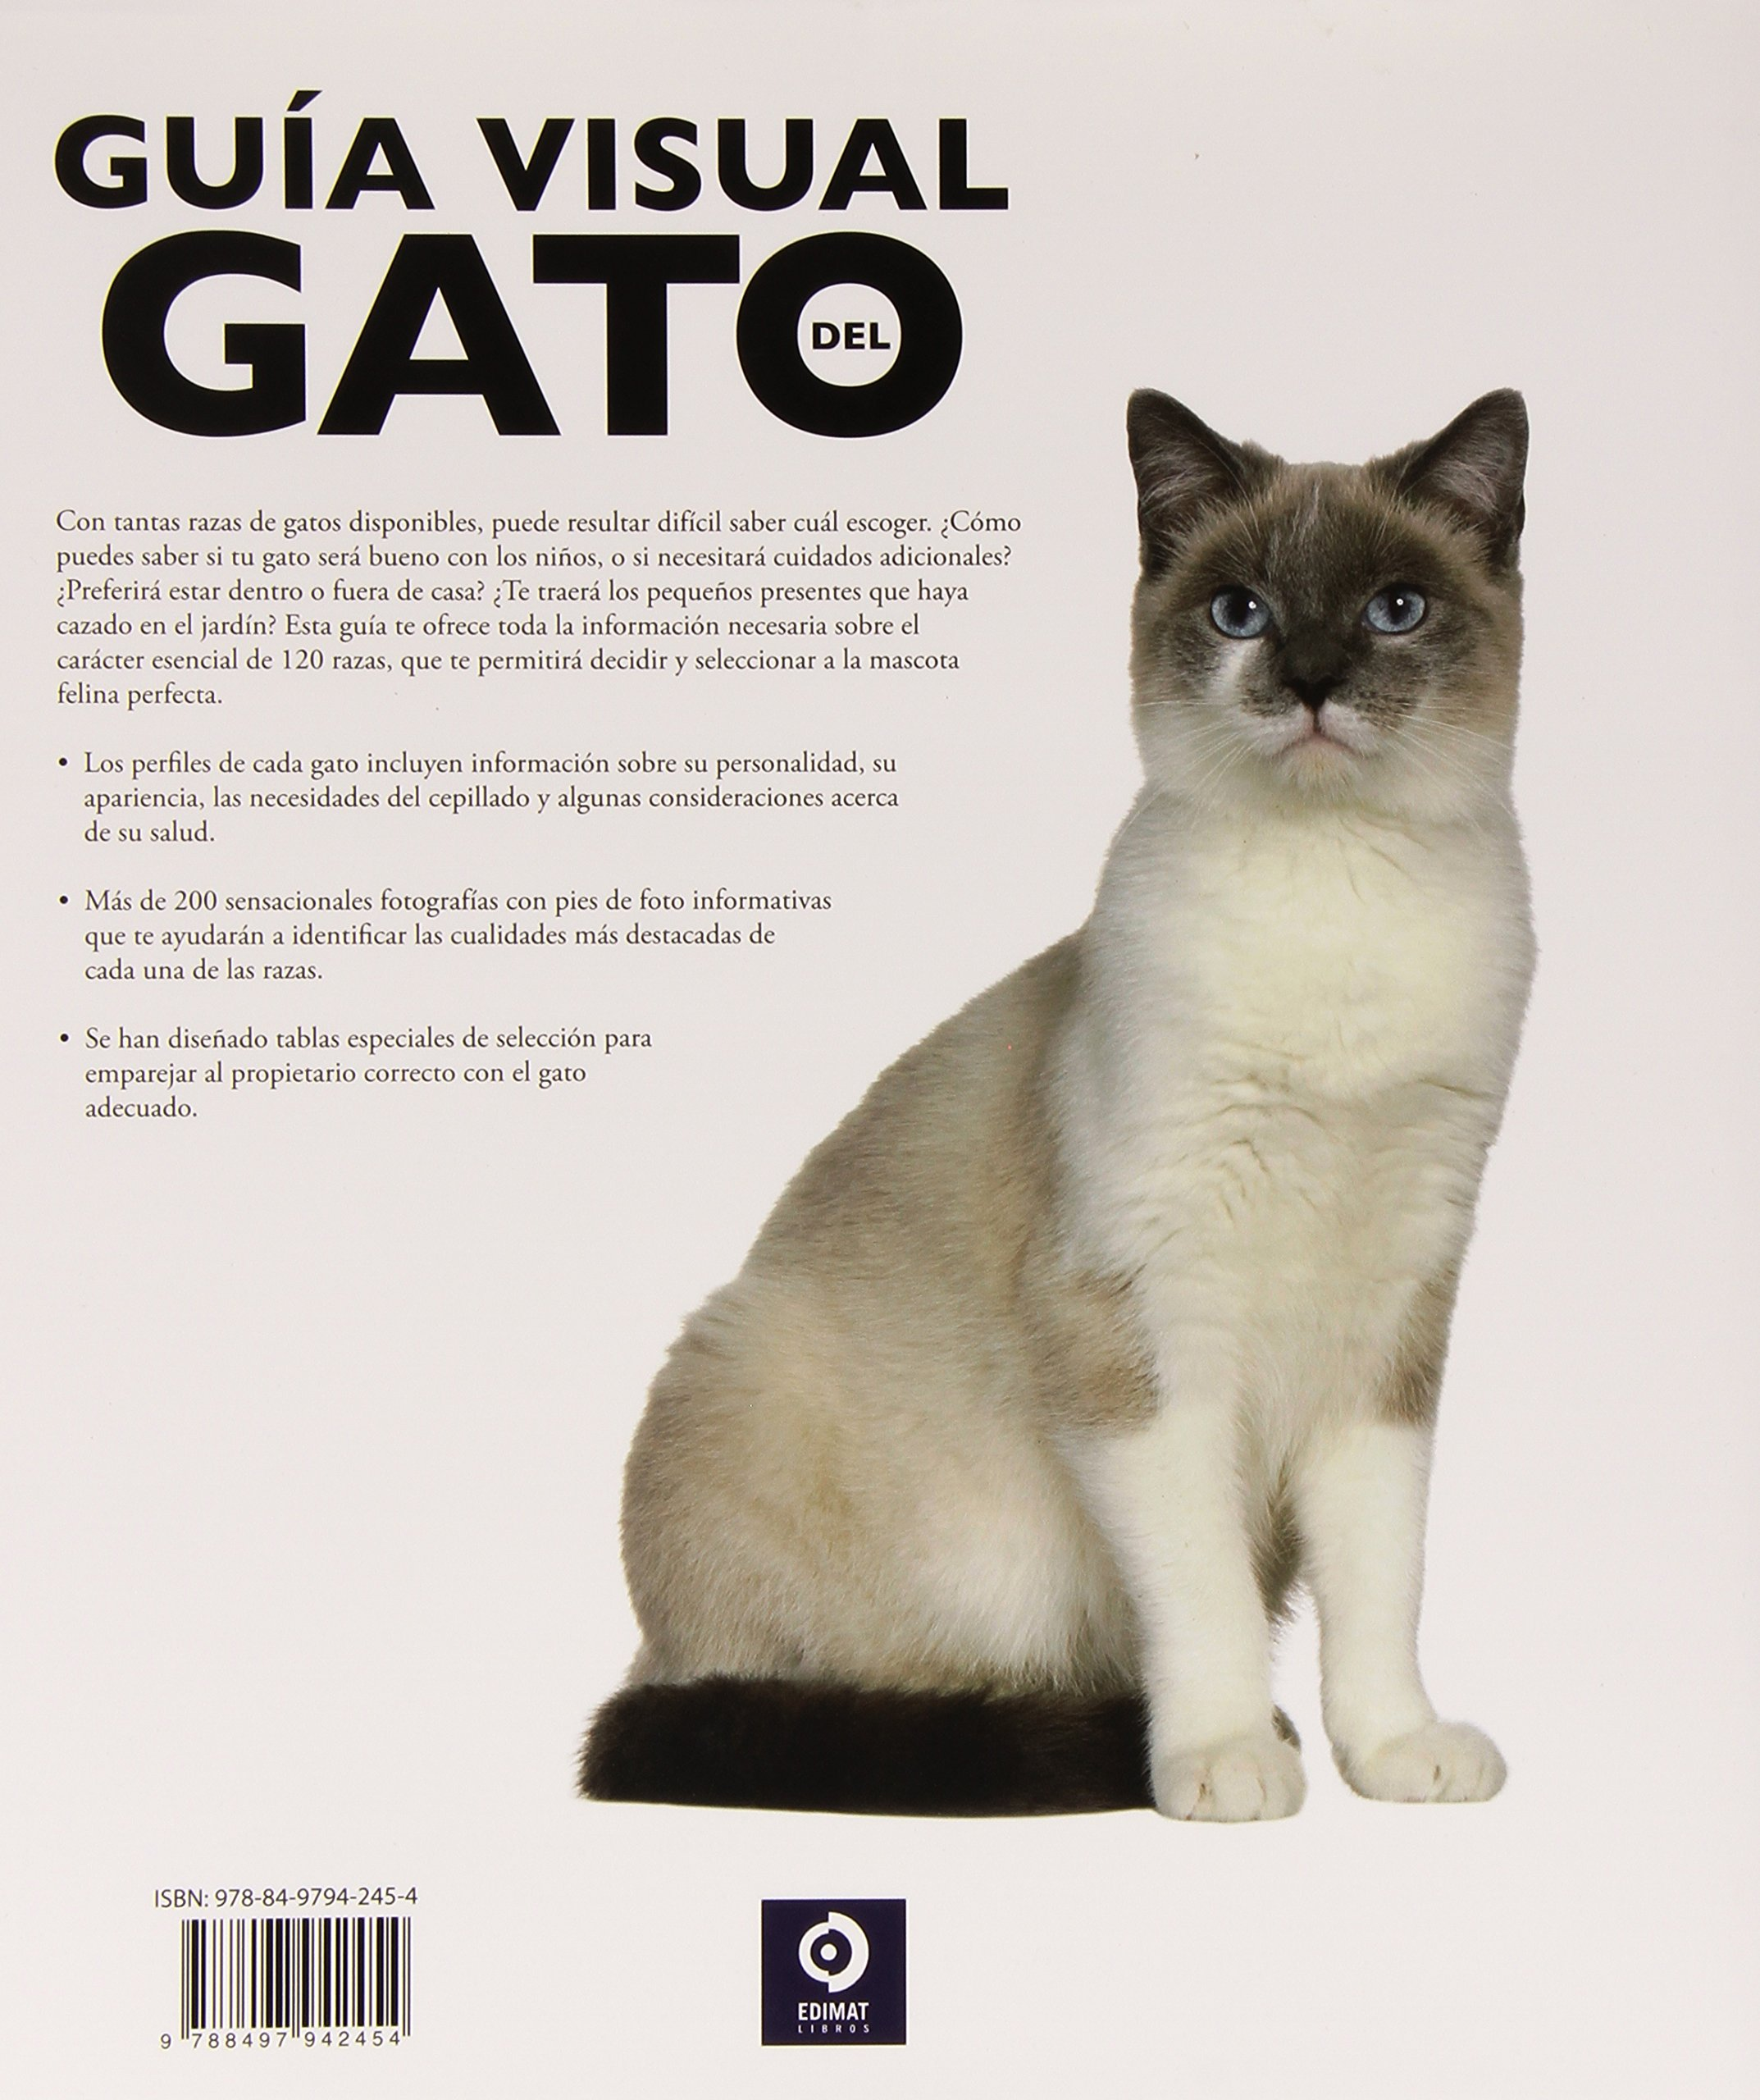 Guía visual del gato: como escoger al gato adecuado: DAVID ALDERTON: 9788497942454: Amazon.com: Books